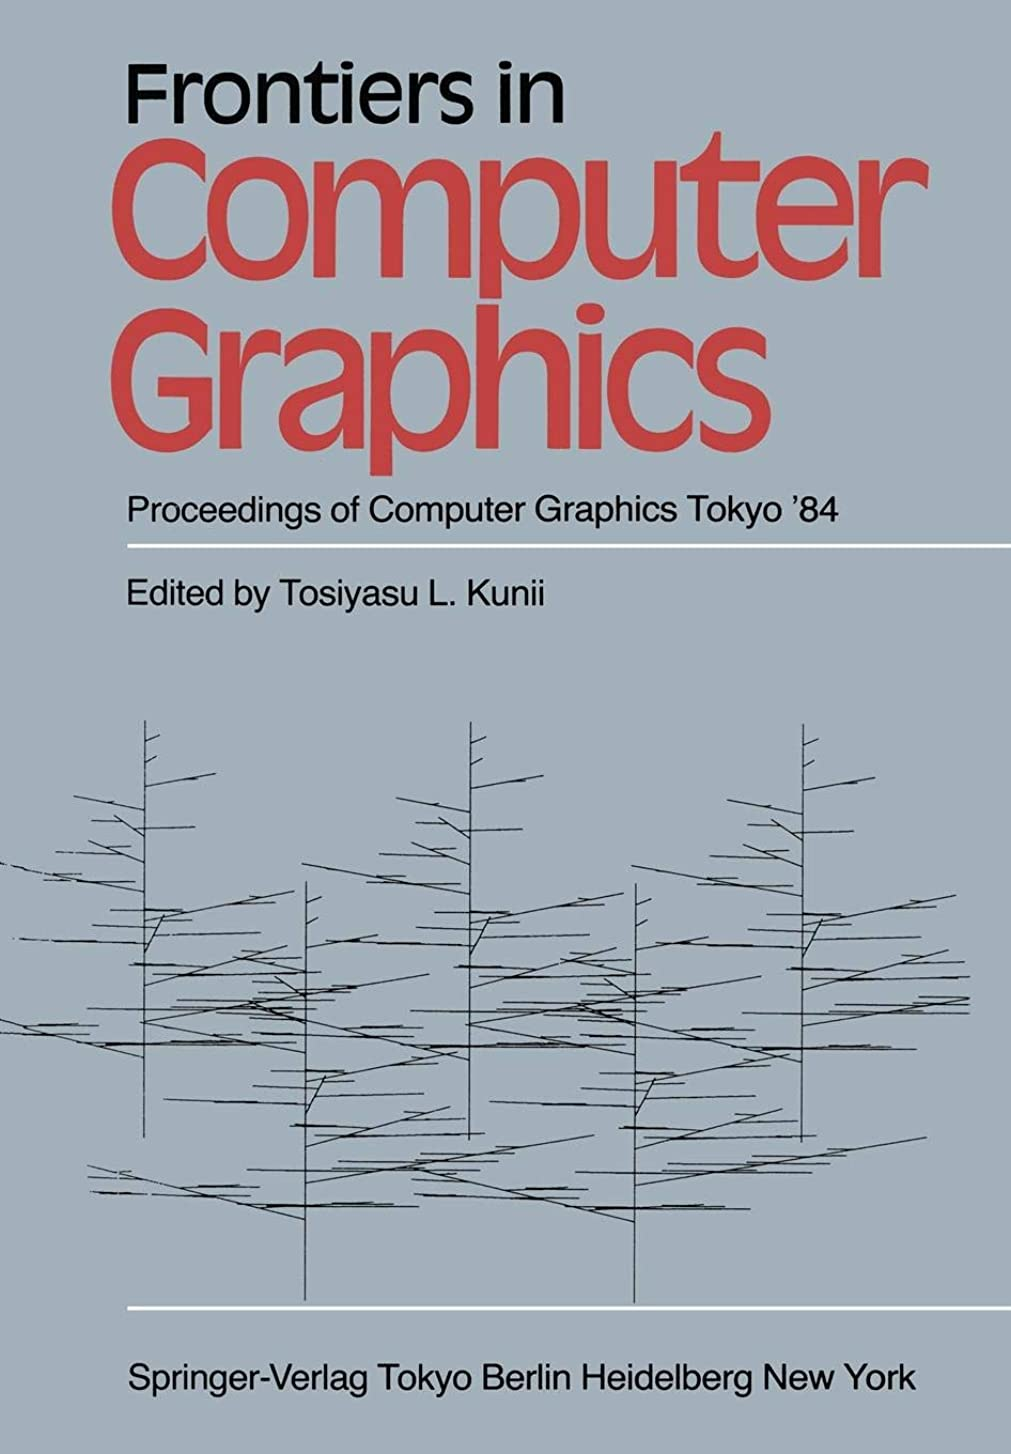 ピーブペンサミュエルFrontiers in Computer Graphics: Proceedings of Computer Graphics Tokyo '84